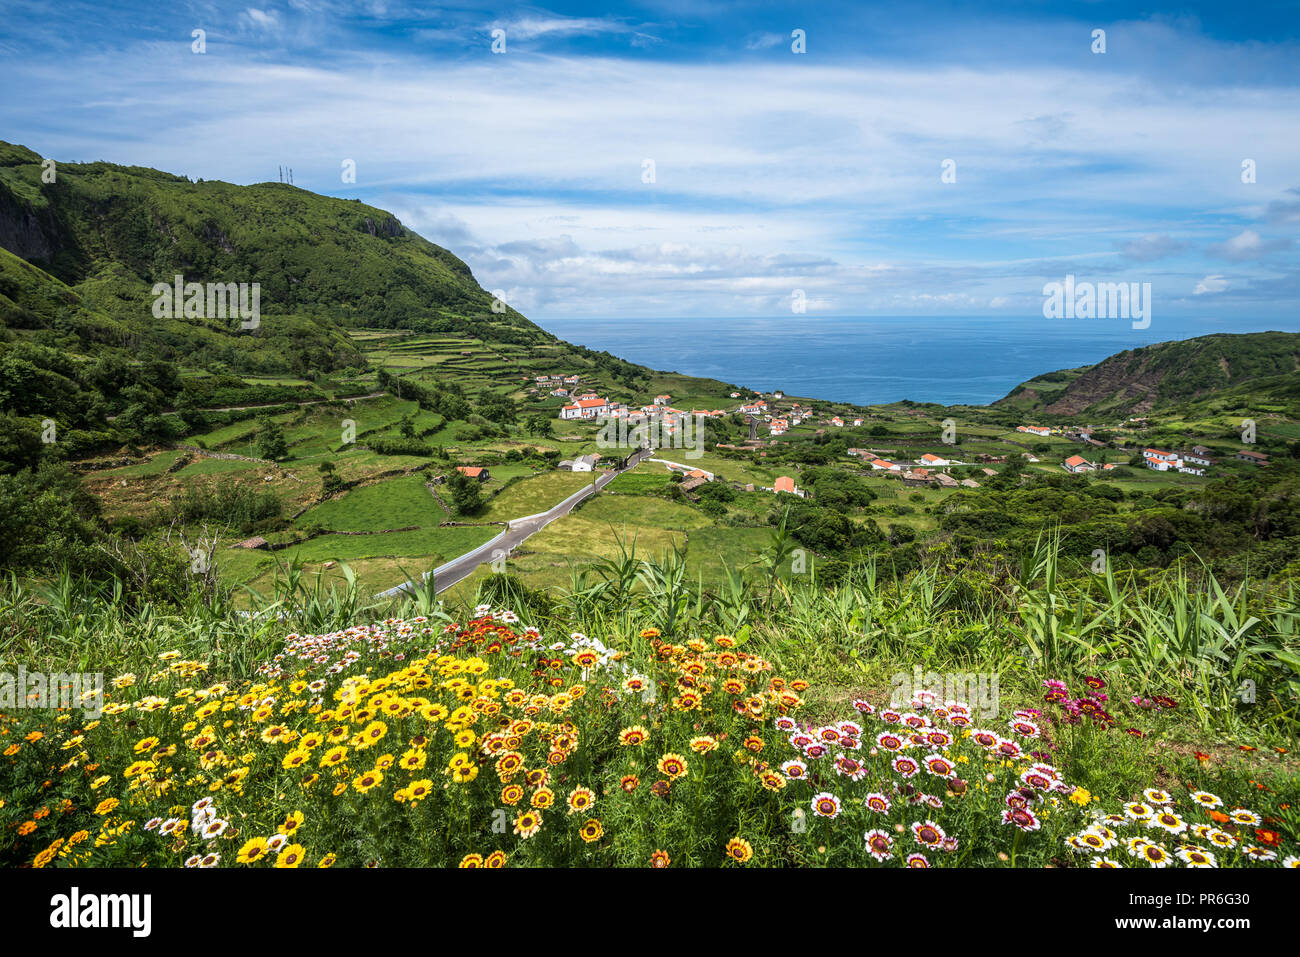 Green coastline of Flores island, Azores, Portugal - Stock Image